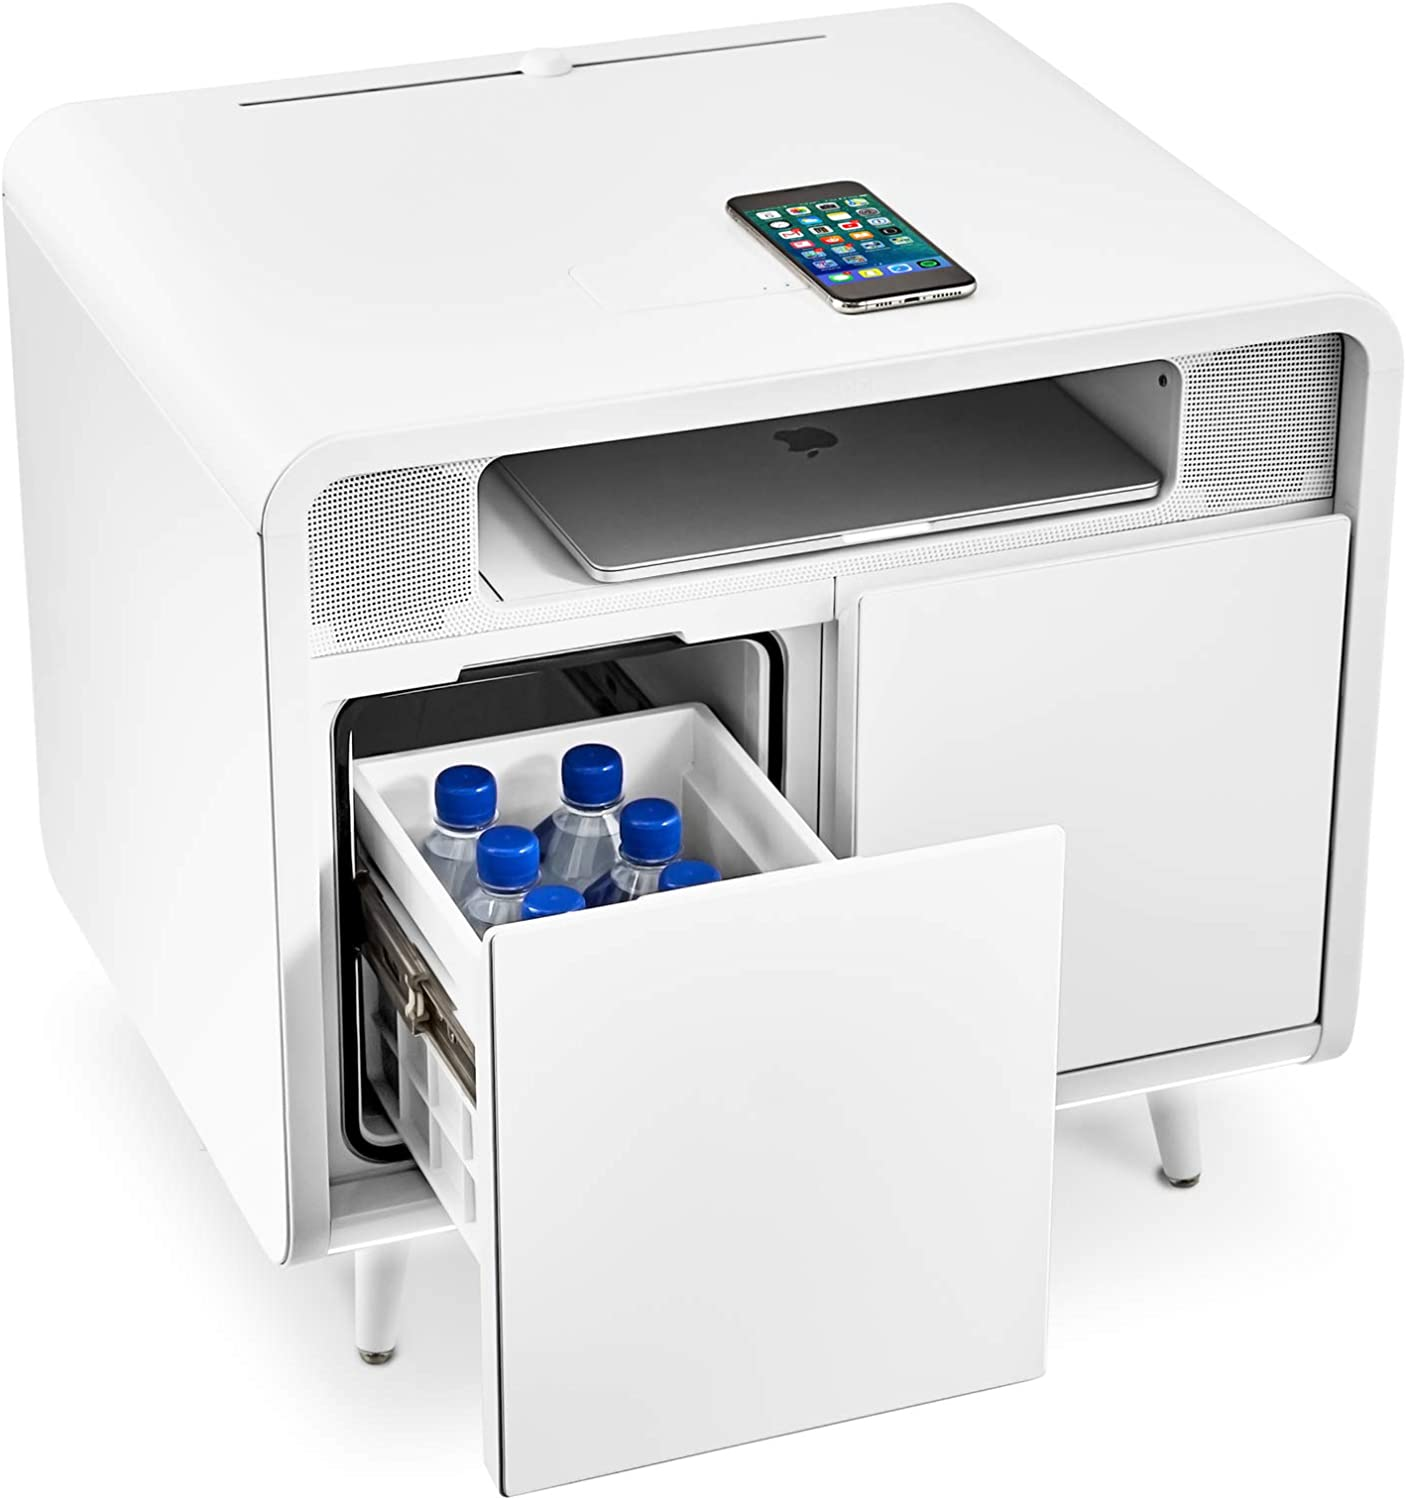 SOBRO Smart Side/Nightstand Table with LED Light, Wireless Charging, Cooling Drawer, Bluetooth Speakers